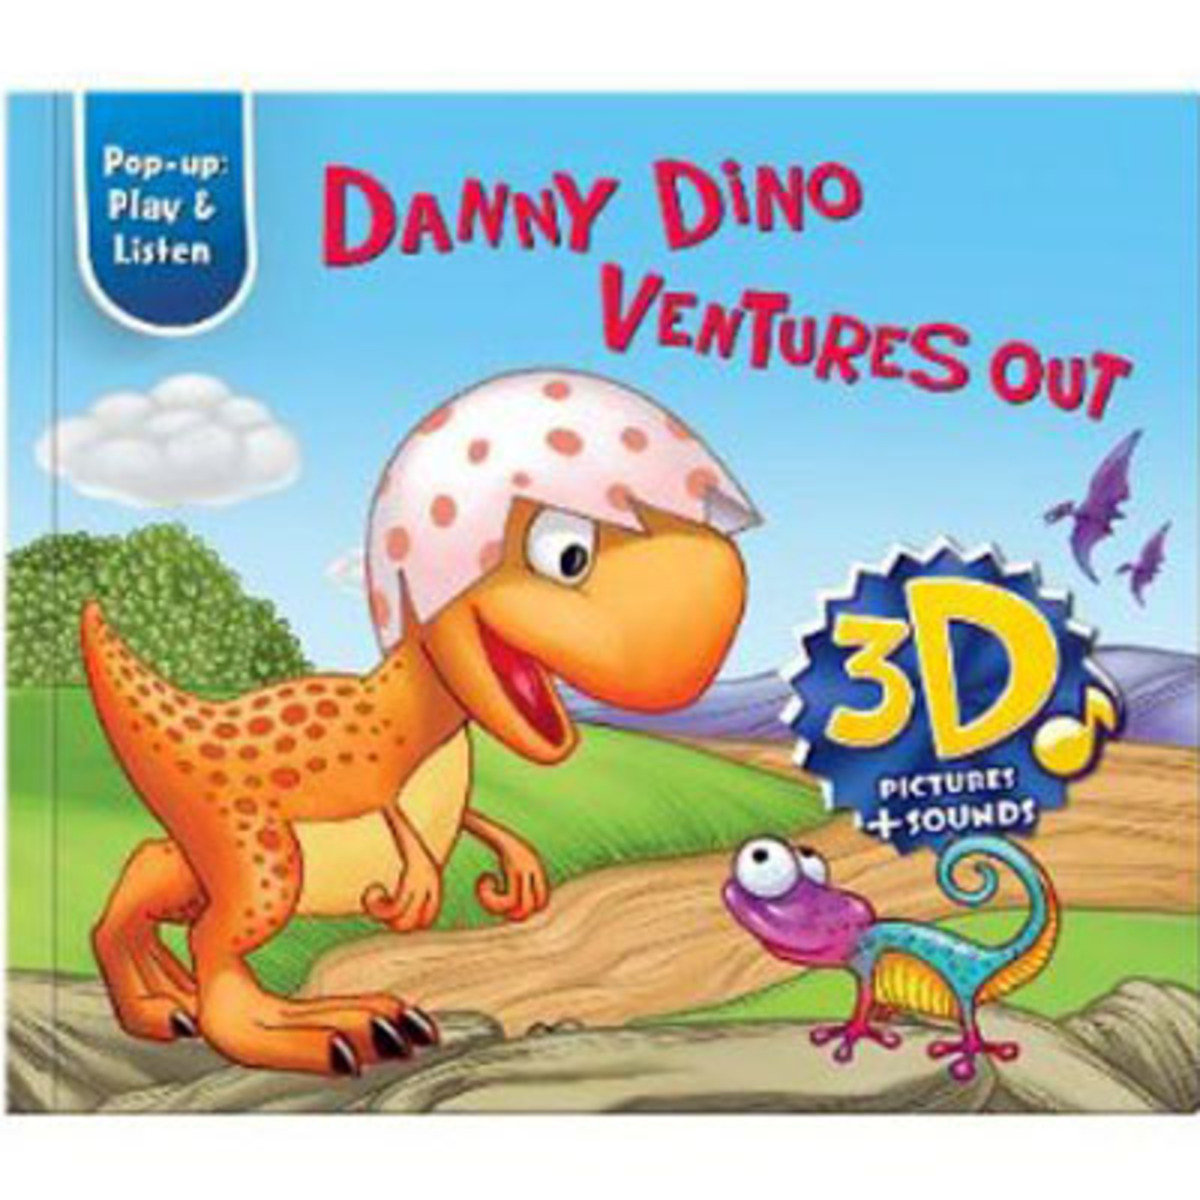 Danny Dino Ventures Out (Pop-up: Play & Listen) 9781618890344